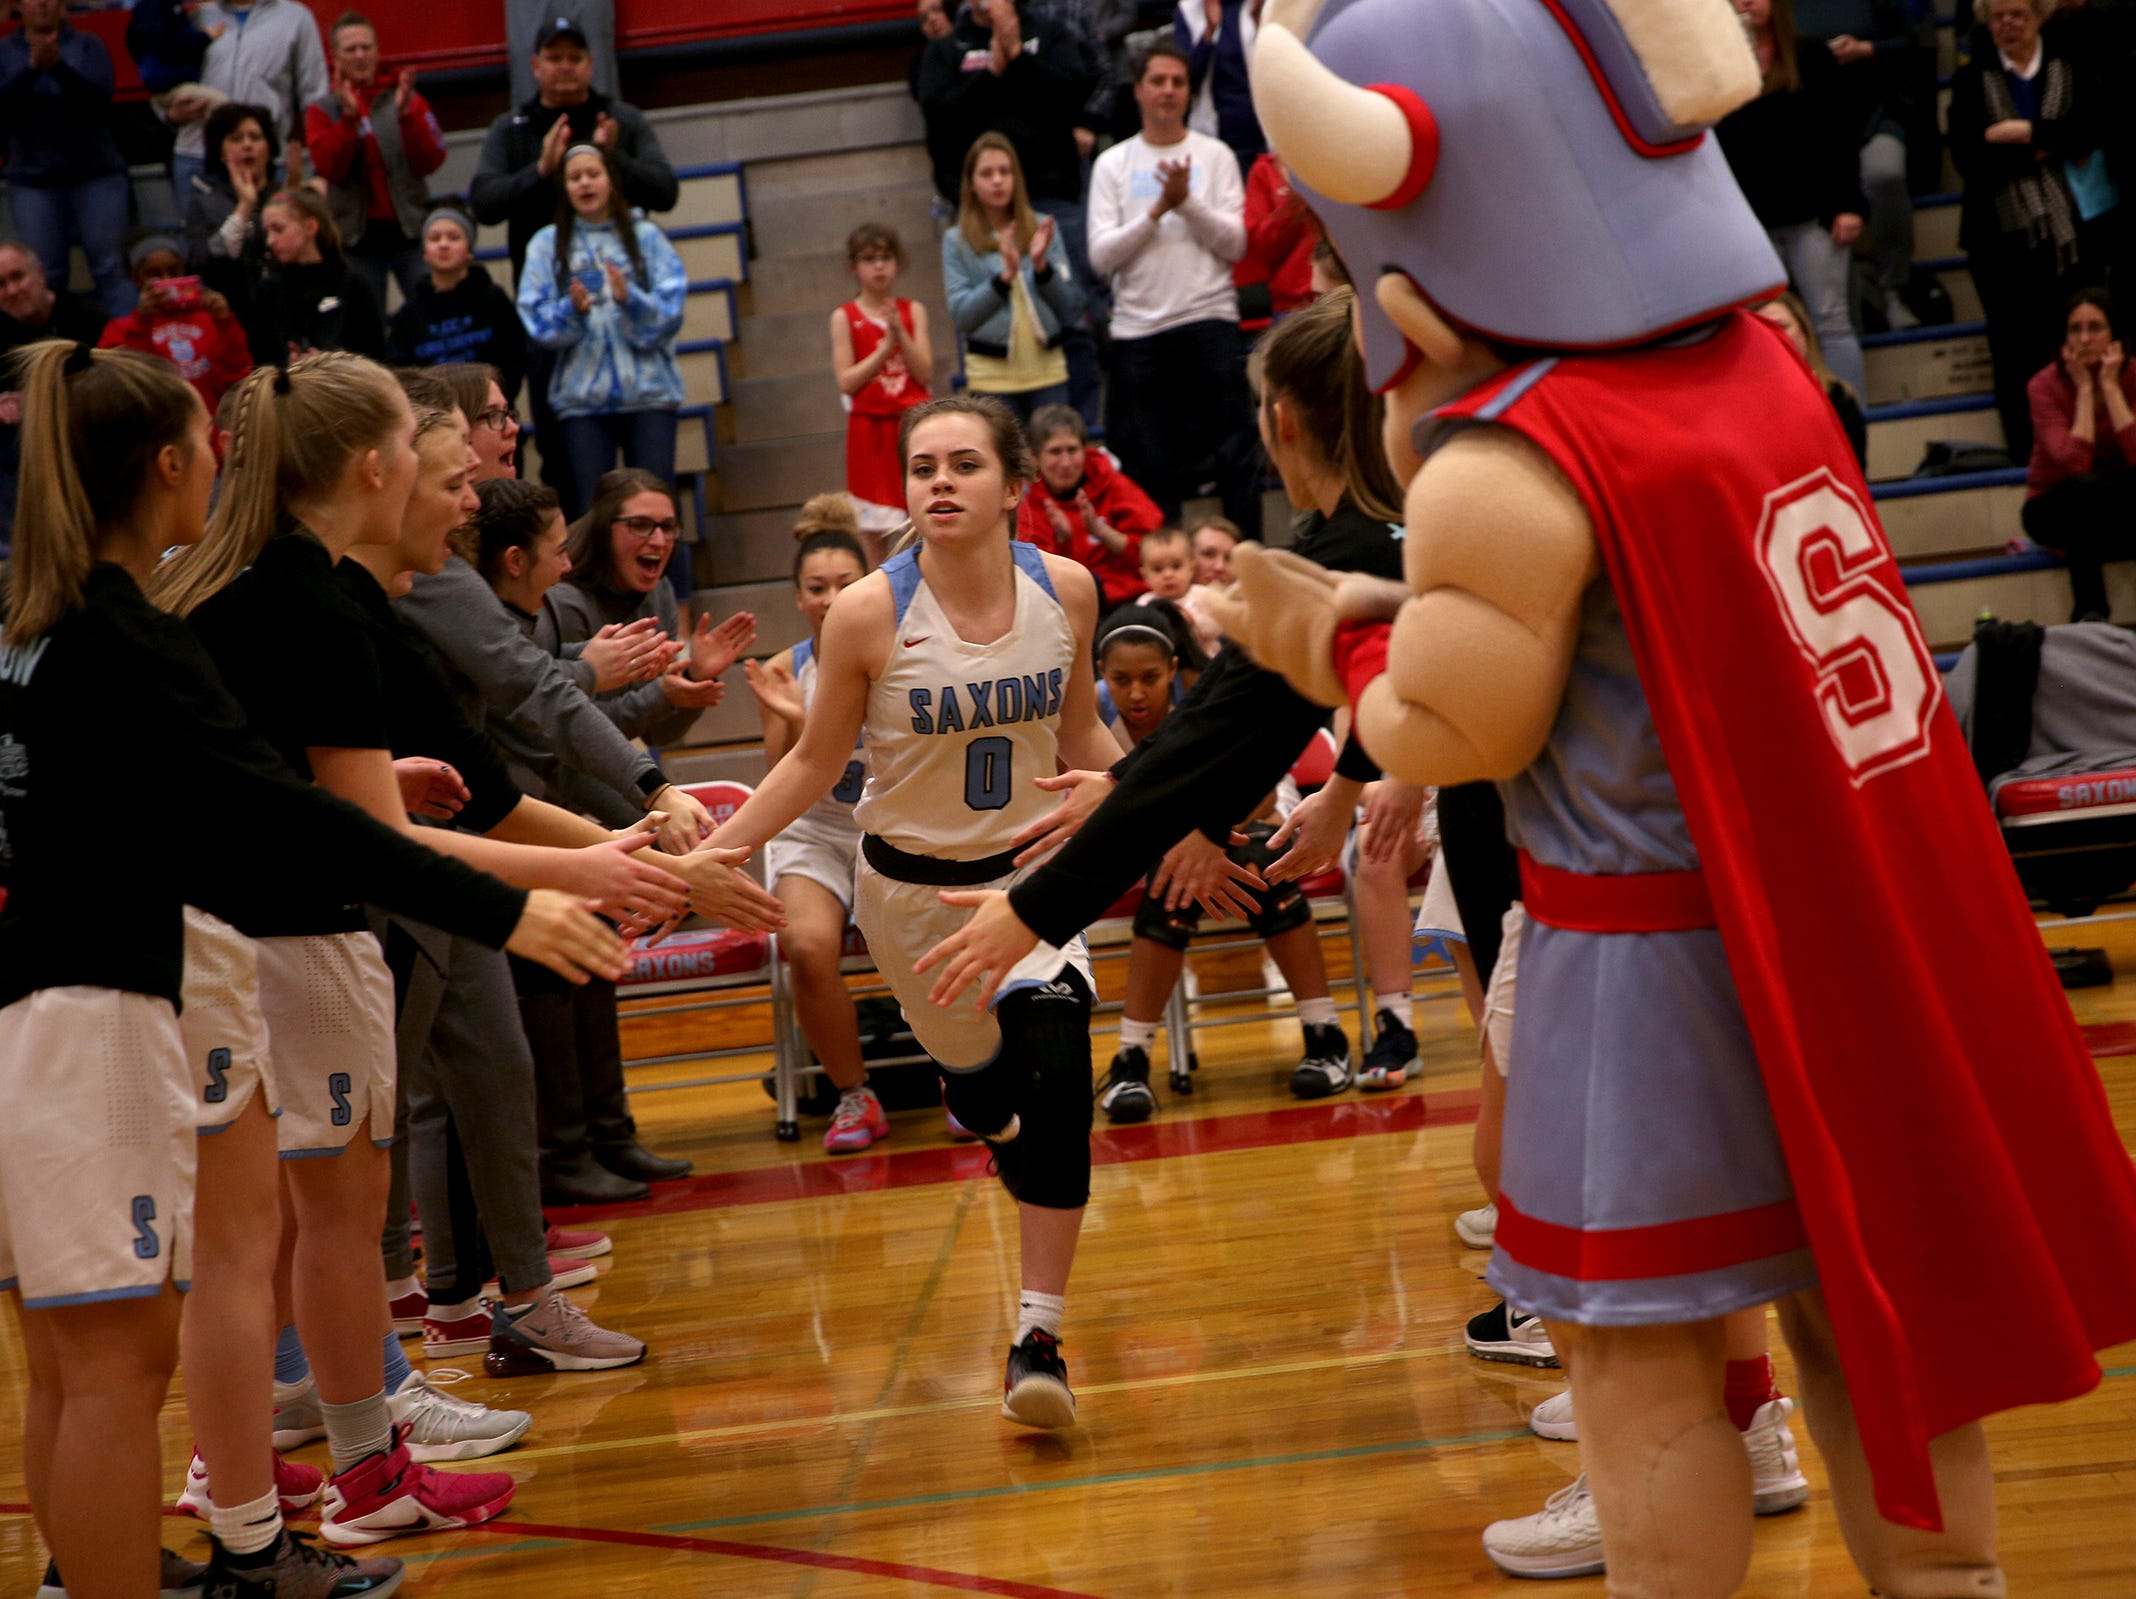 South Salem's Ellyson Haytas (0) is introduced in the starting lineup during the South Salem vs. Mountainside girls basketball OSAA playoff game in Salem on Thursday, Feb. 28, 2019.